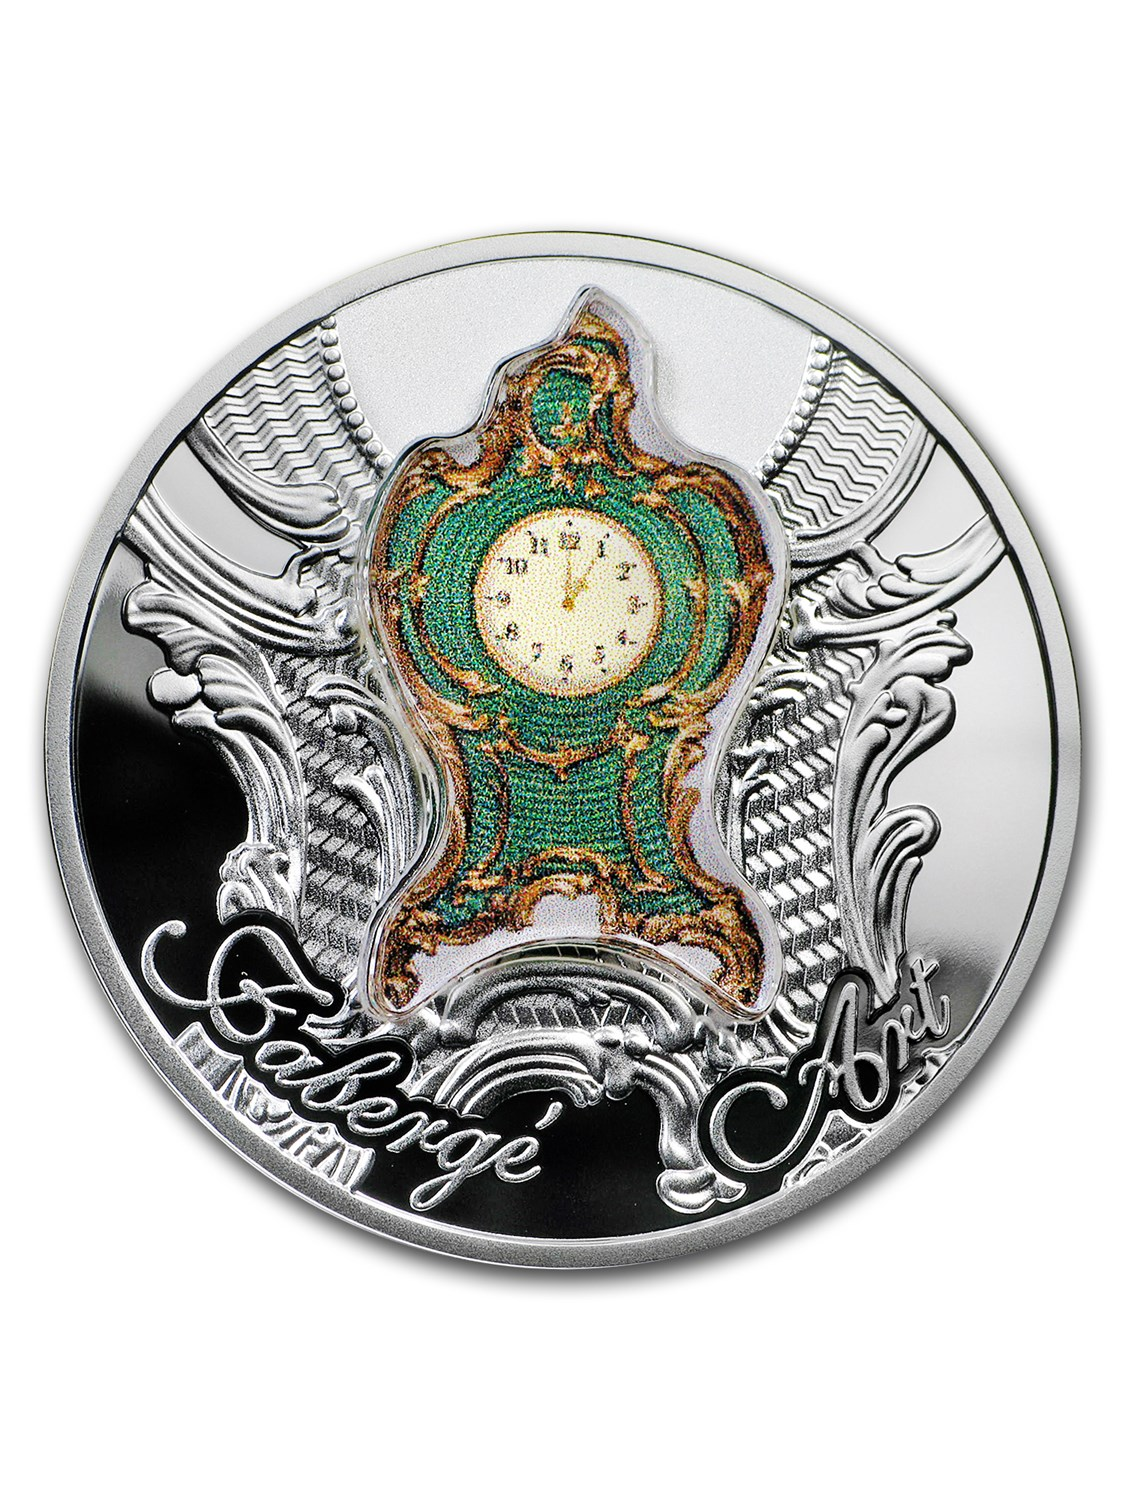 2018 Niue 1 oz Silver Art of Faberge (Imperial Desk Clock Art) by